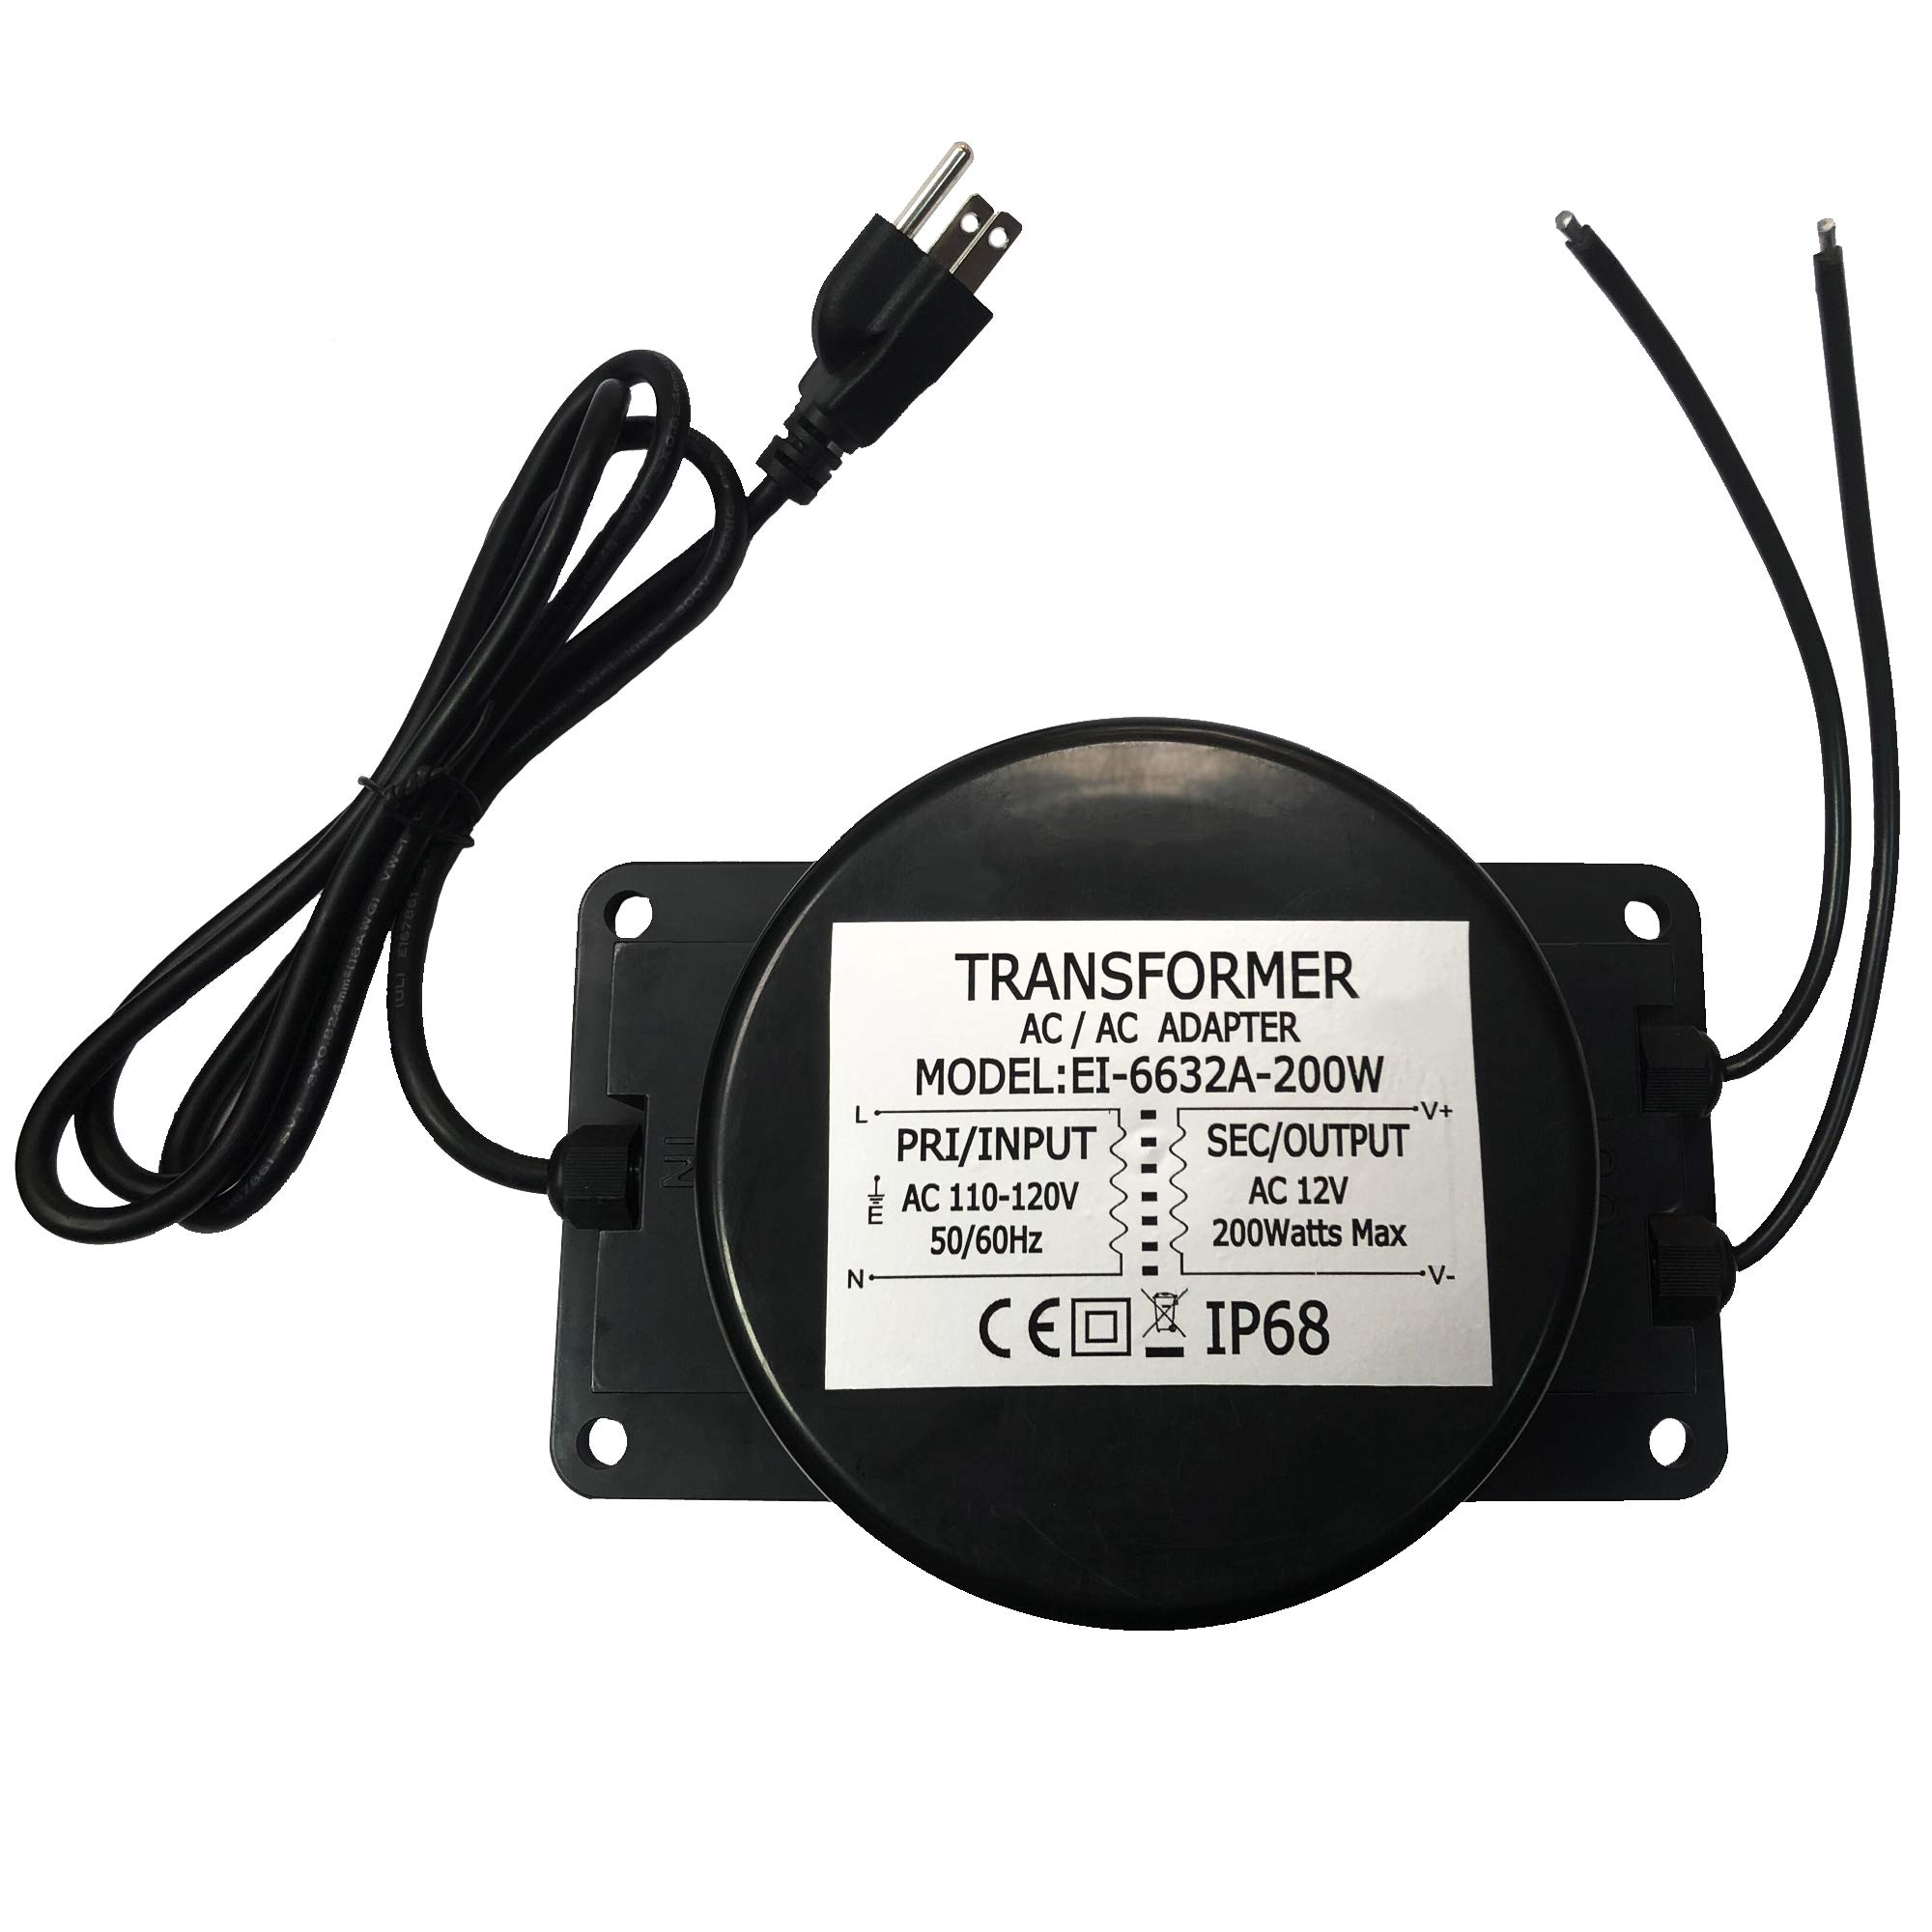 CNBRIGHTER Waterproof 12V AC Transformer 200W,110V-120V AC to 12V AC LED Power Supply, Voltage Converter LED Driver,Adapter for Outdoor Landscape Lighting/Swimming Pool Light (200 Watts) by CNBRIGHTER